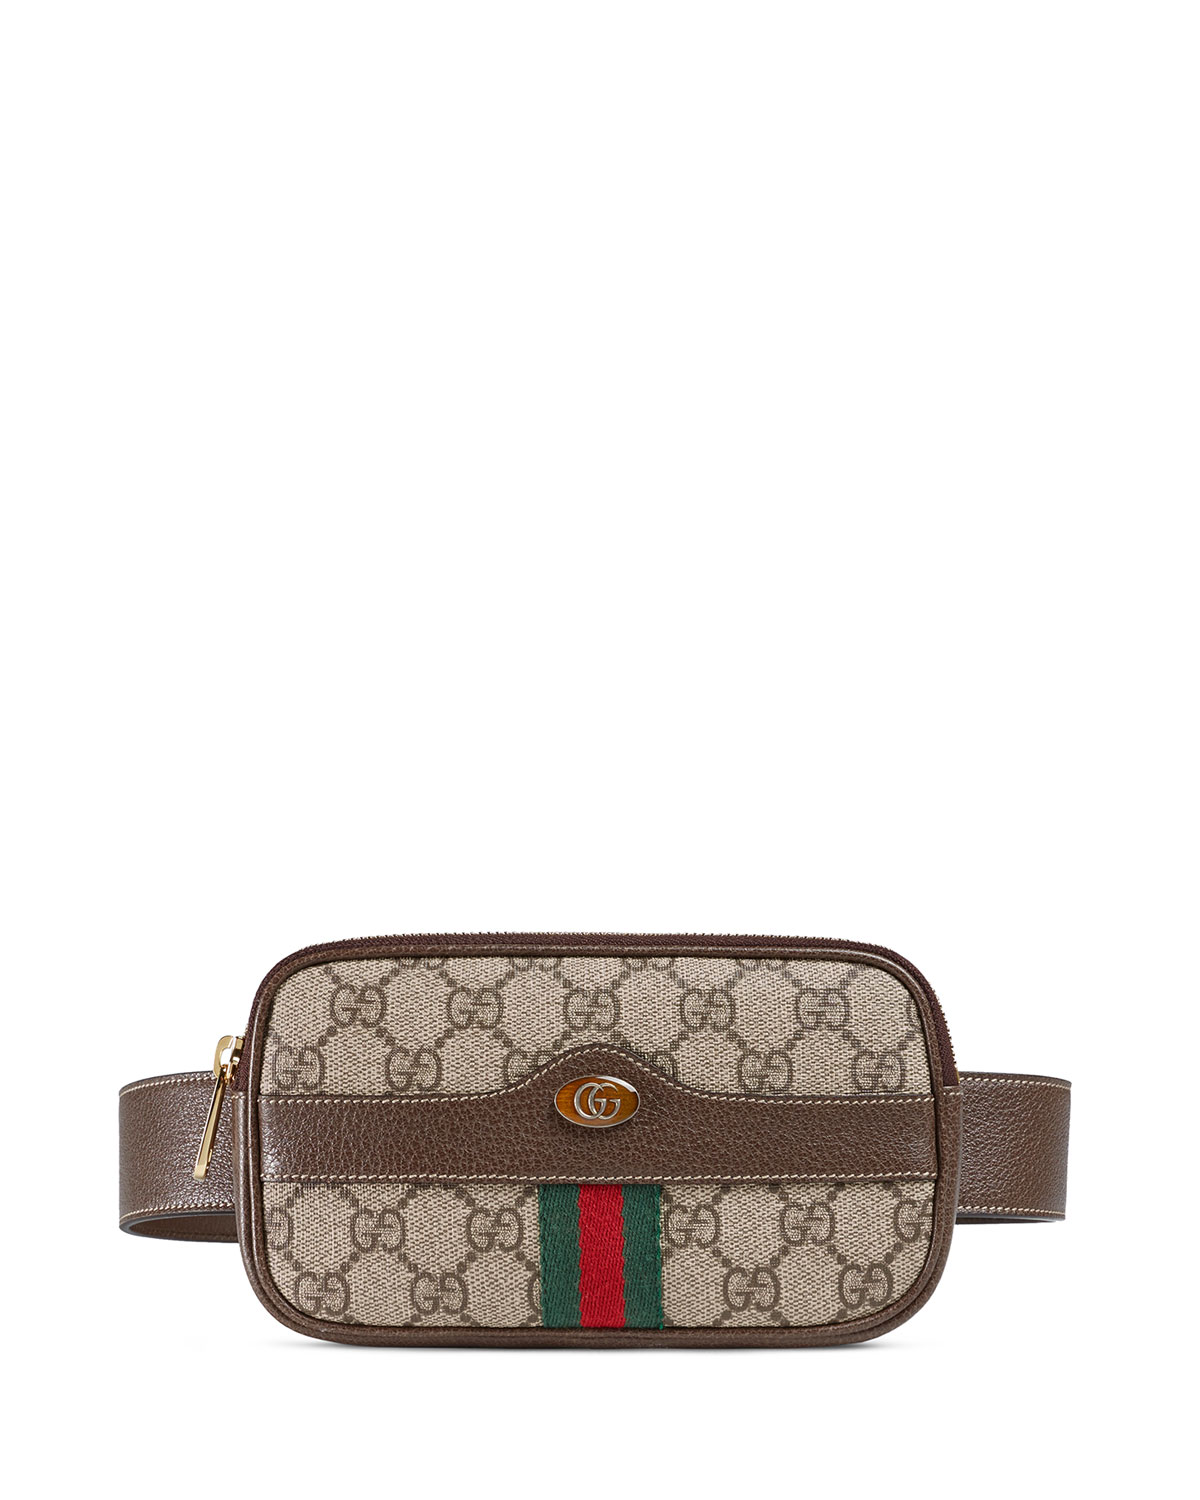 08f9294daa0 Gucci Ophidia GG Supreme Canvas Belt Bag | Neiman Marcus